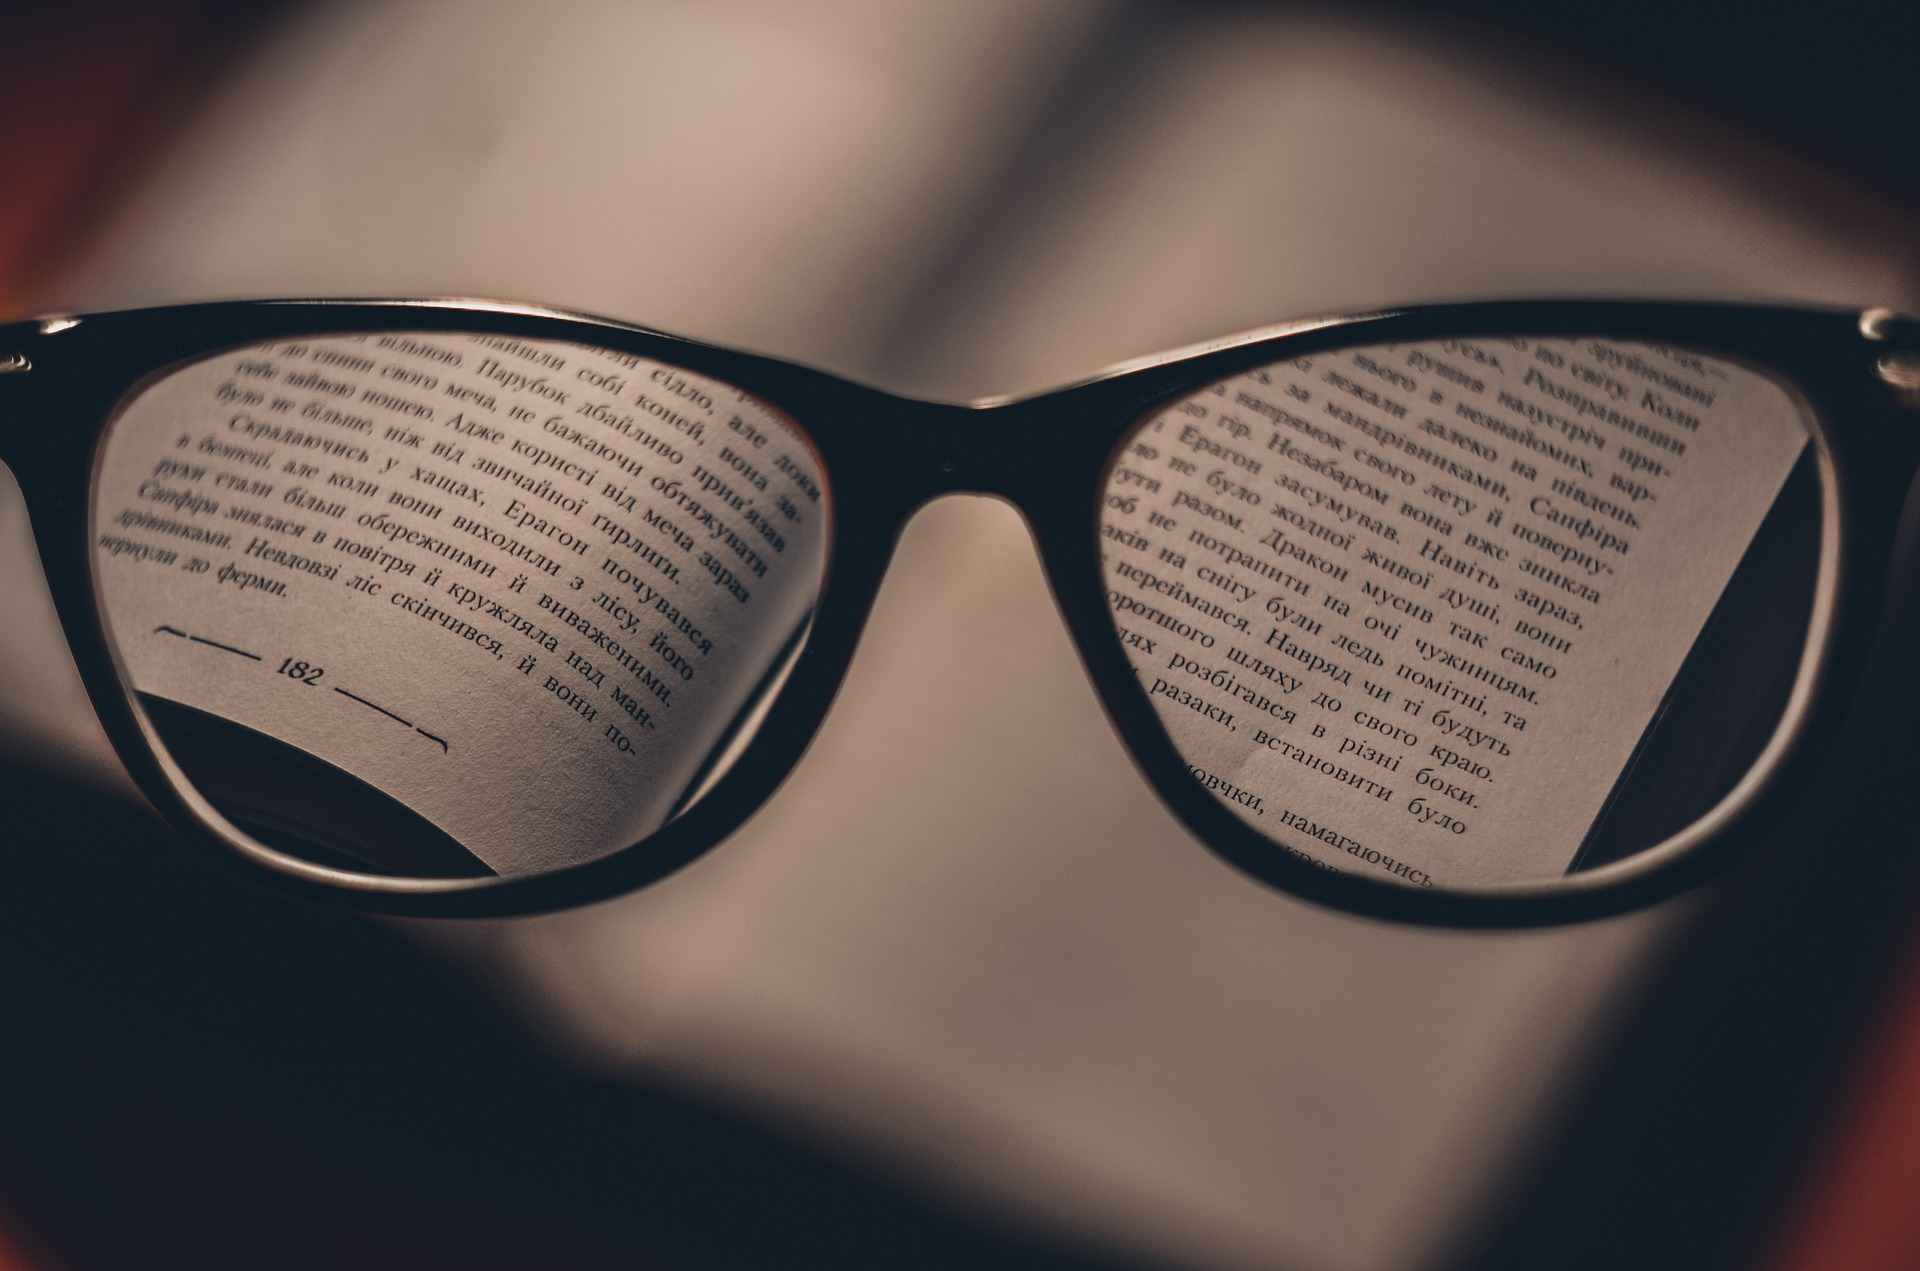 A book trough glasses - only part of the text is in focus.